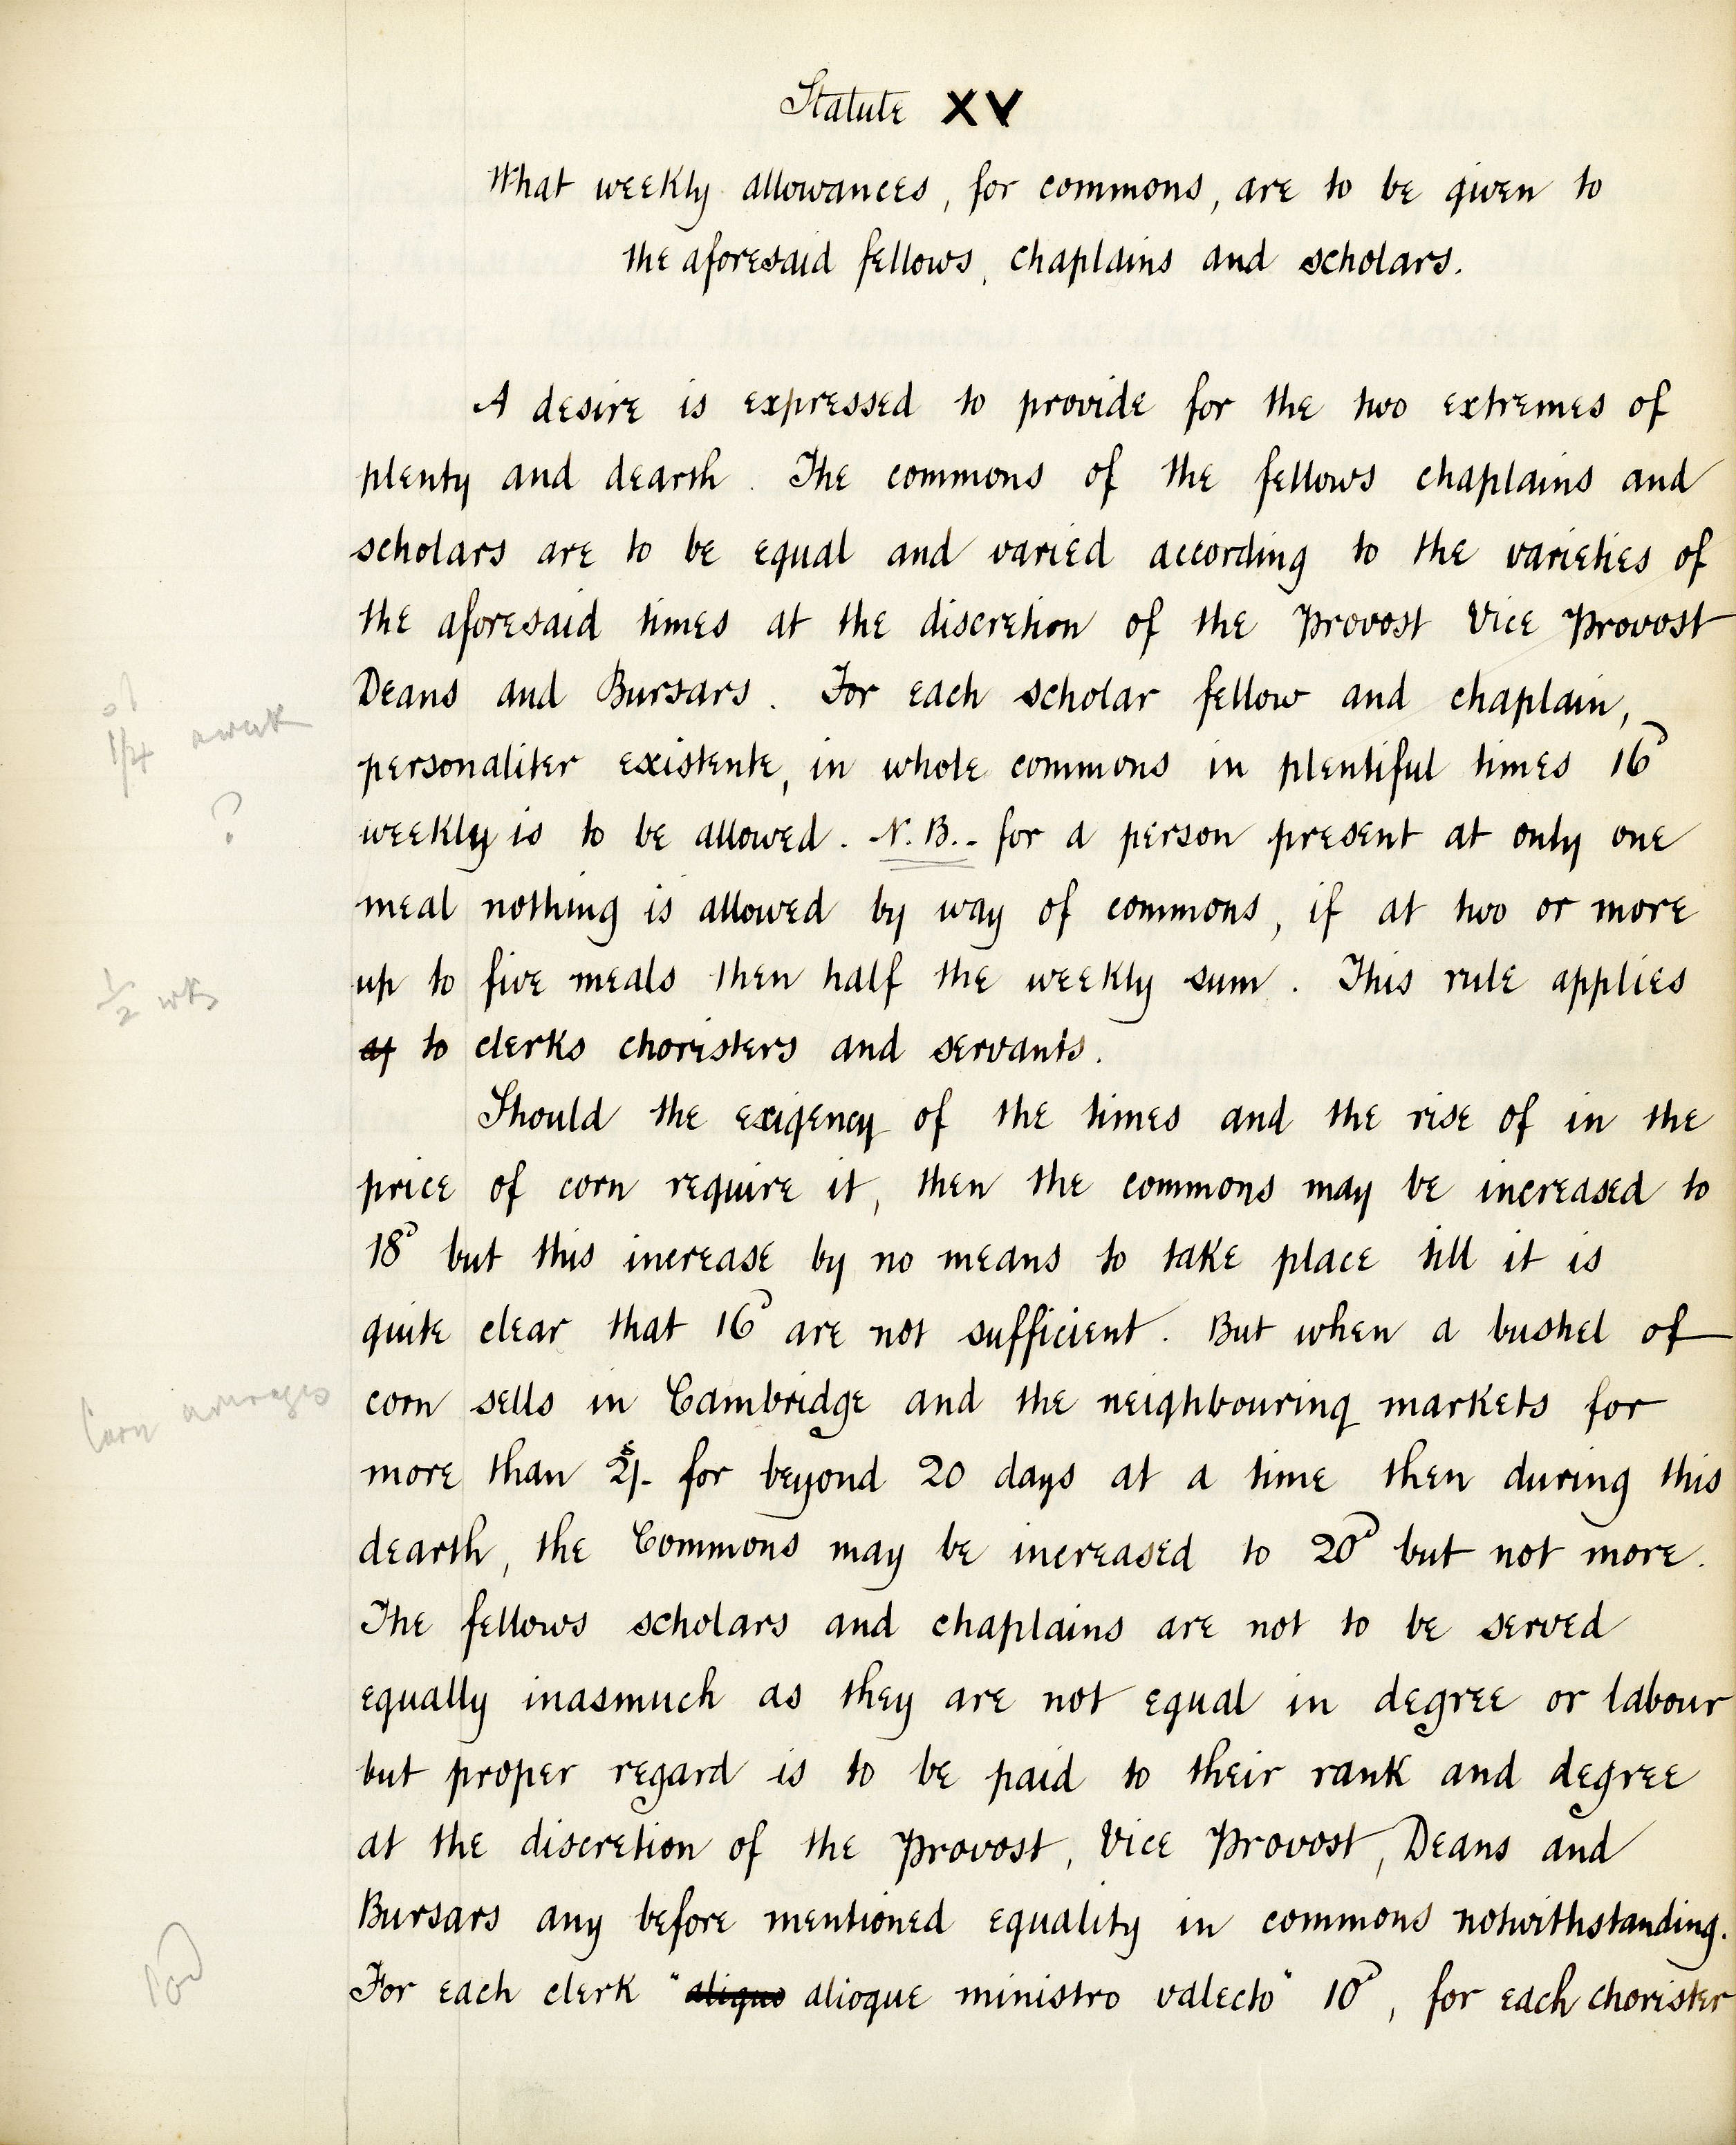 First page of Founder's statute XV, translated by T. Brocklebank (transcribed by F.L.Clarke) (KCS/69)